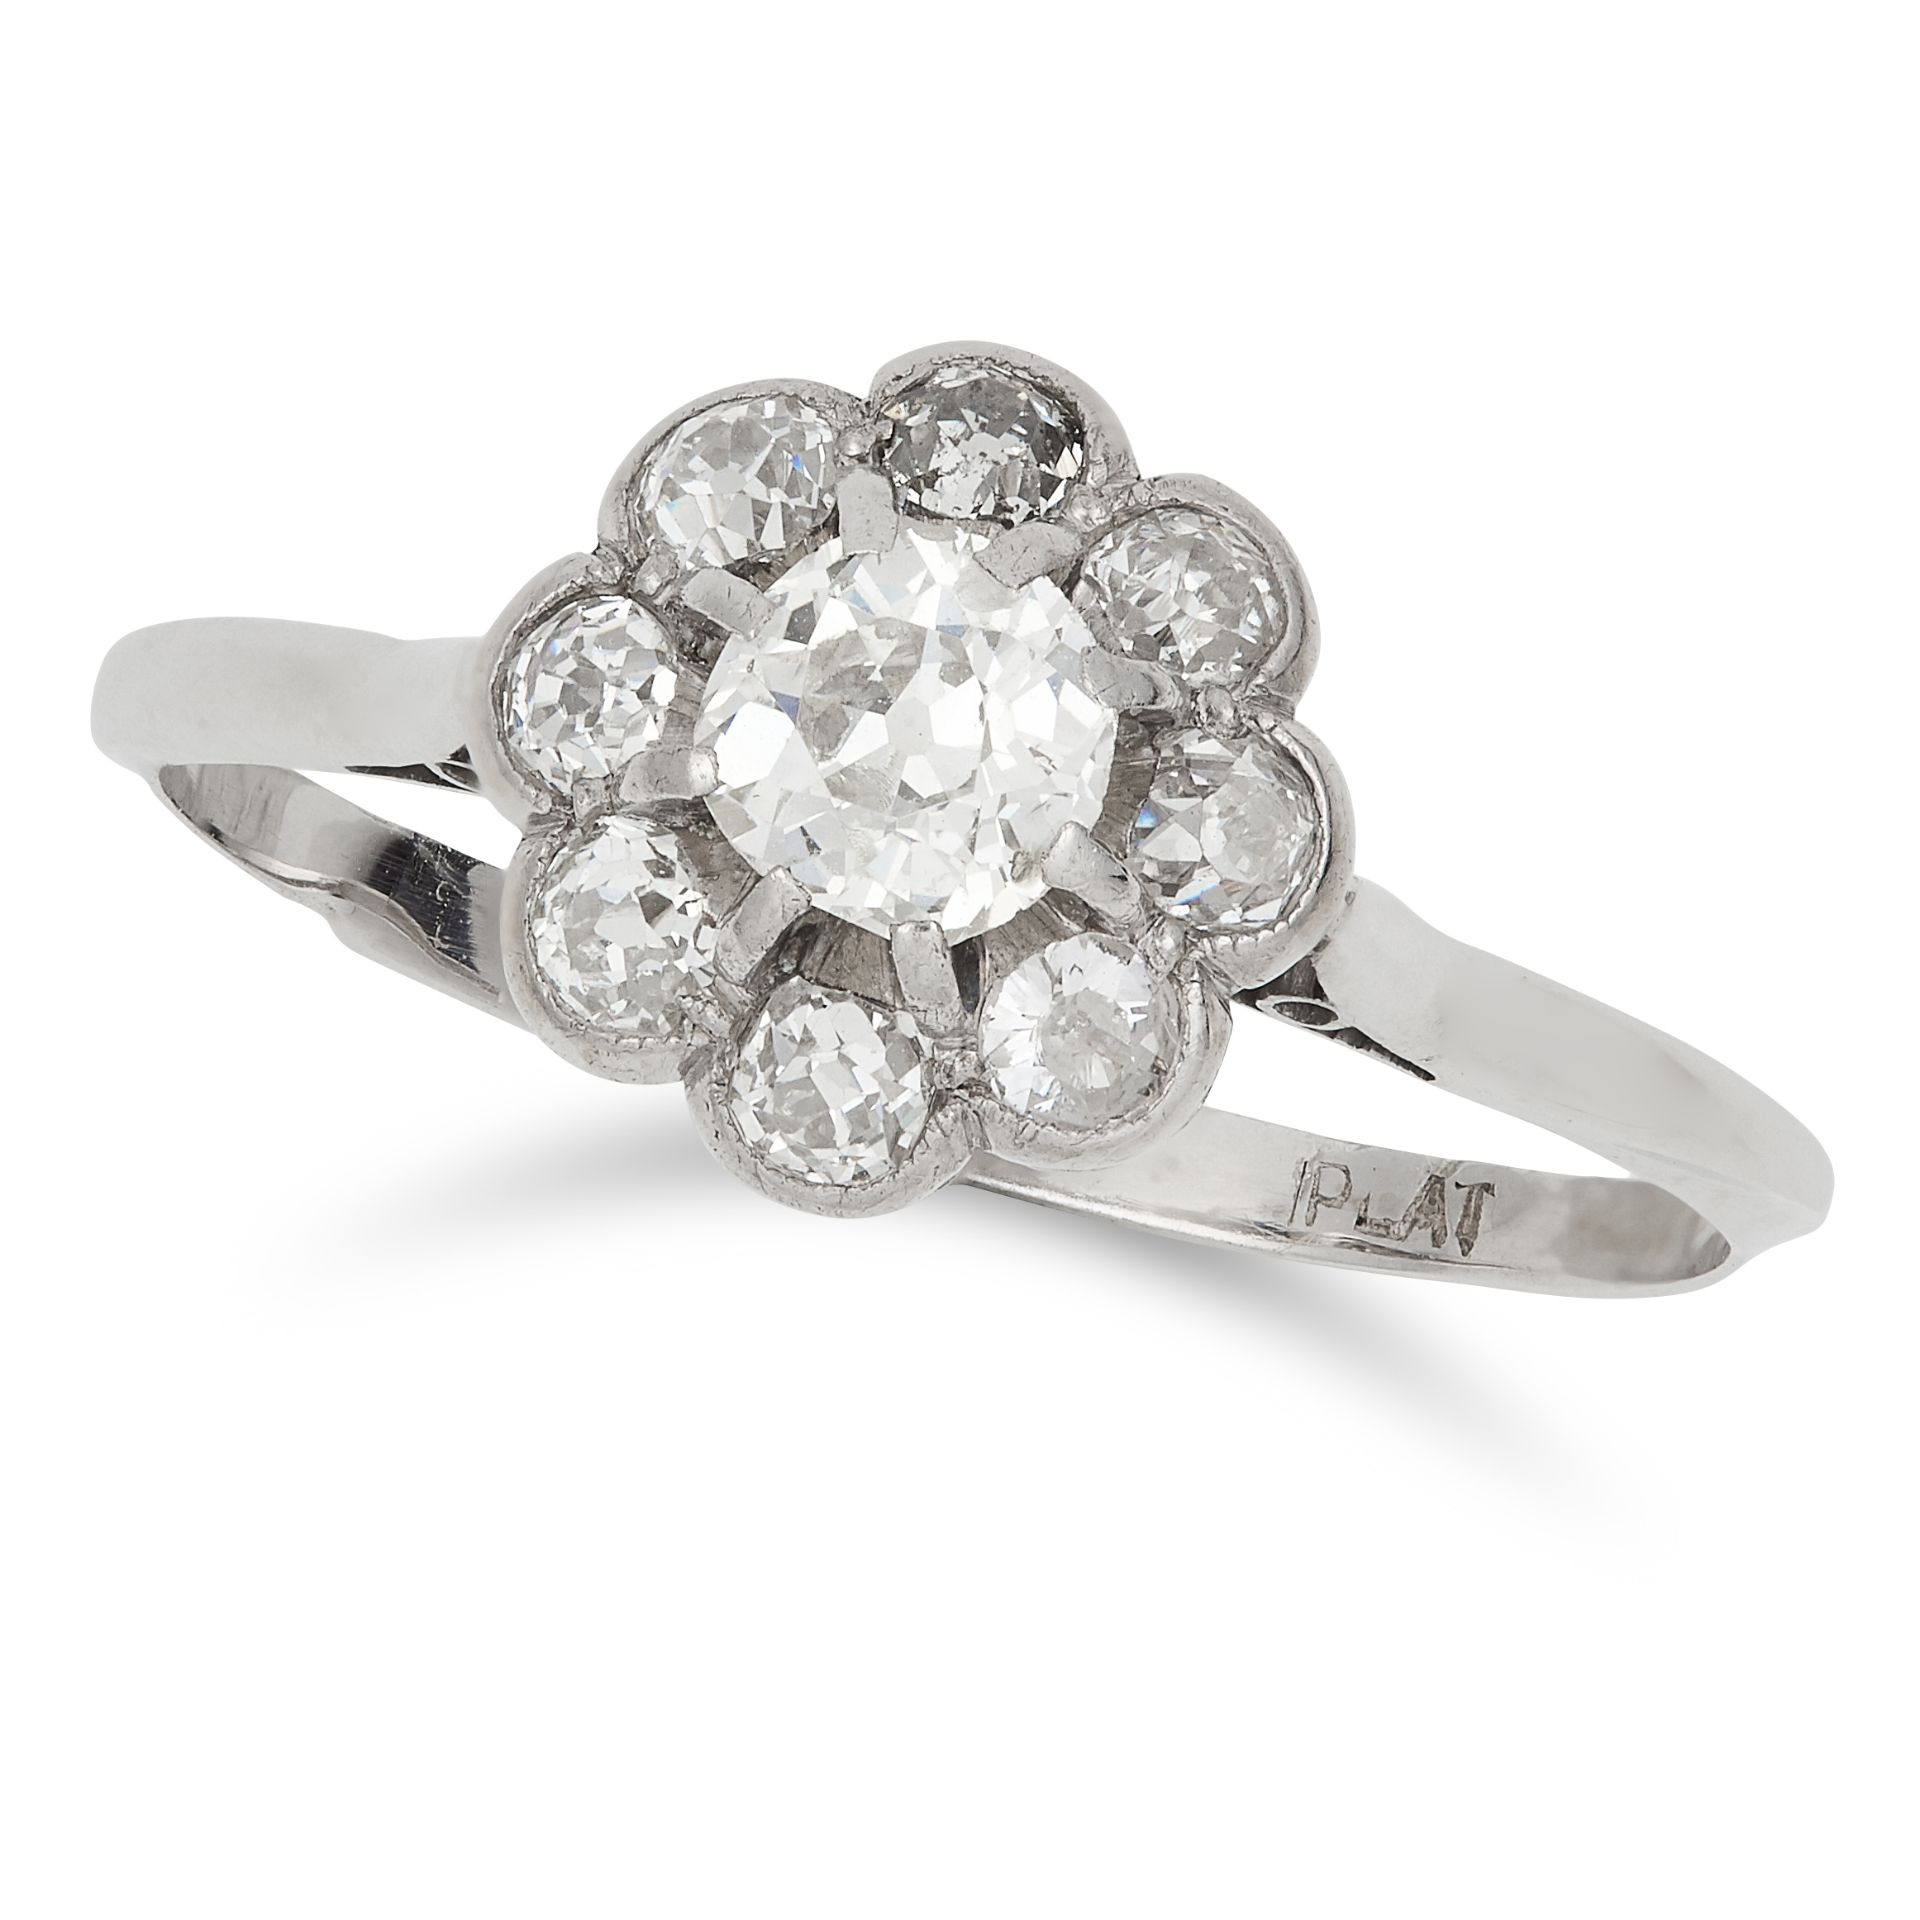 DIAMOND CLUSTER RING set with round and old cut diamonds, size V / 10.5, 2.9g.